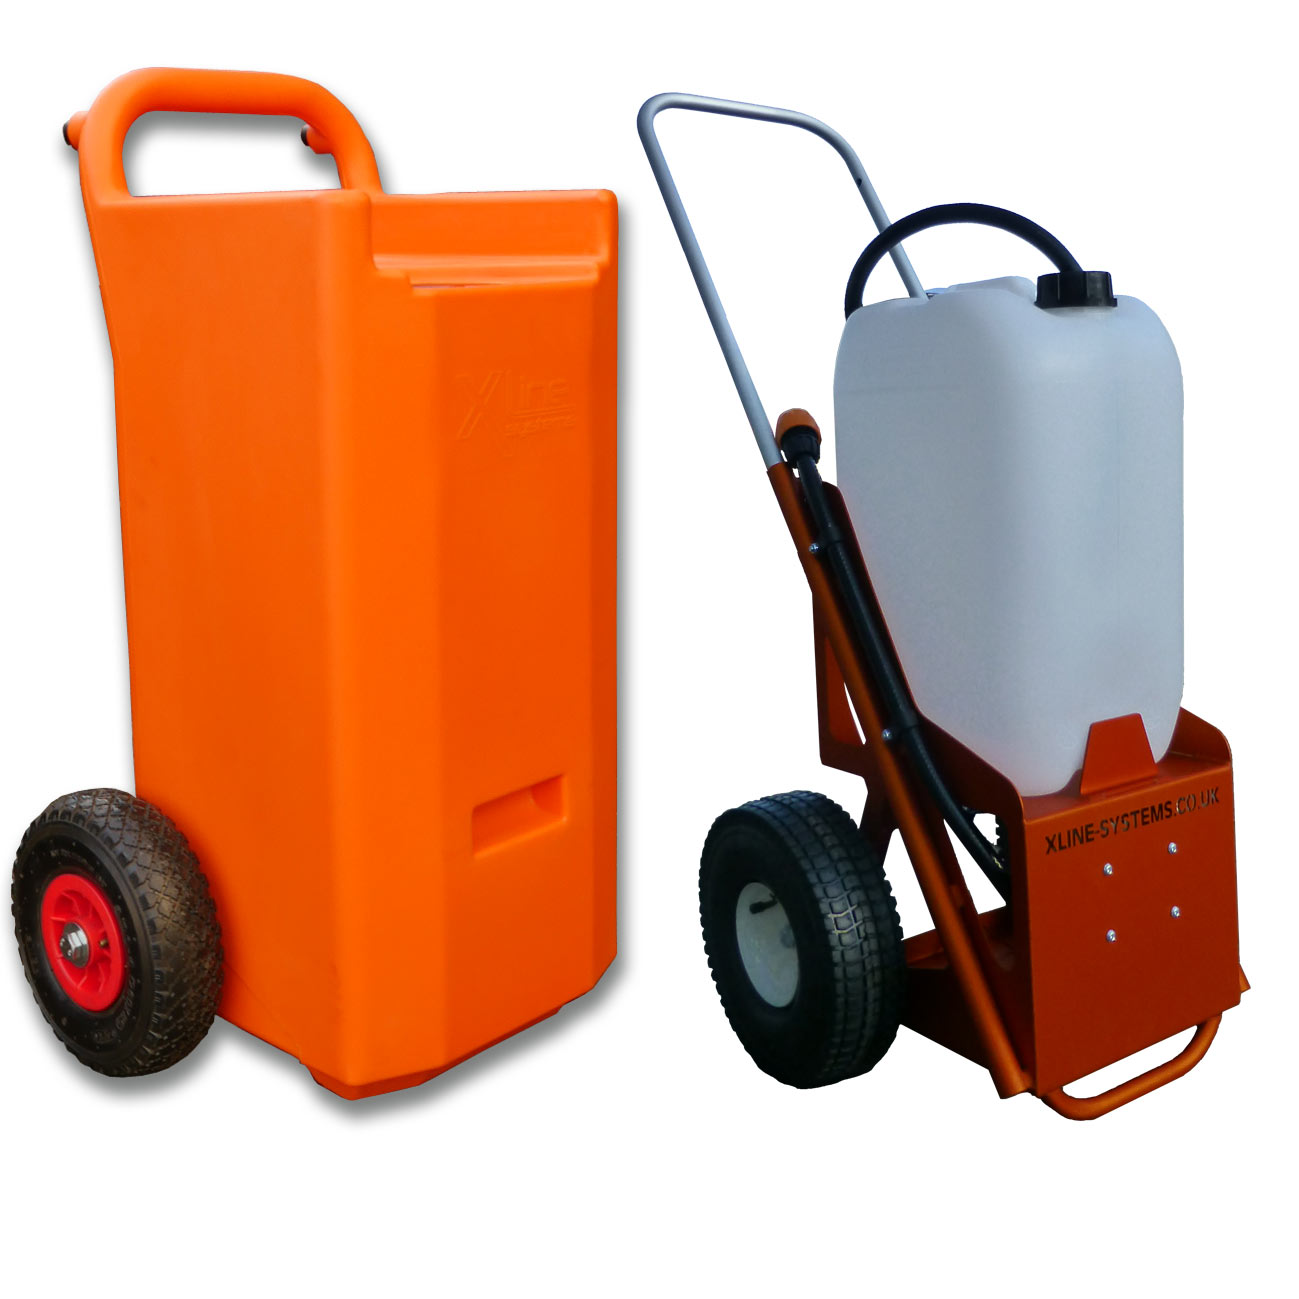 xline window cleaning trollies